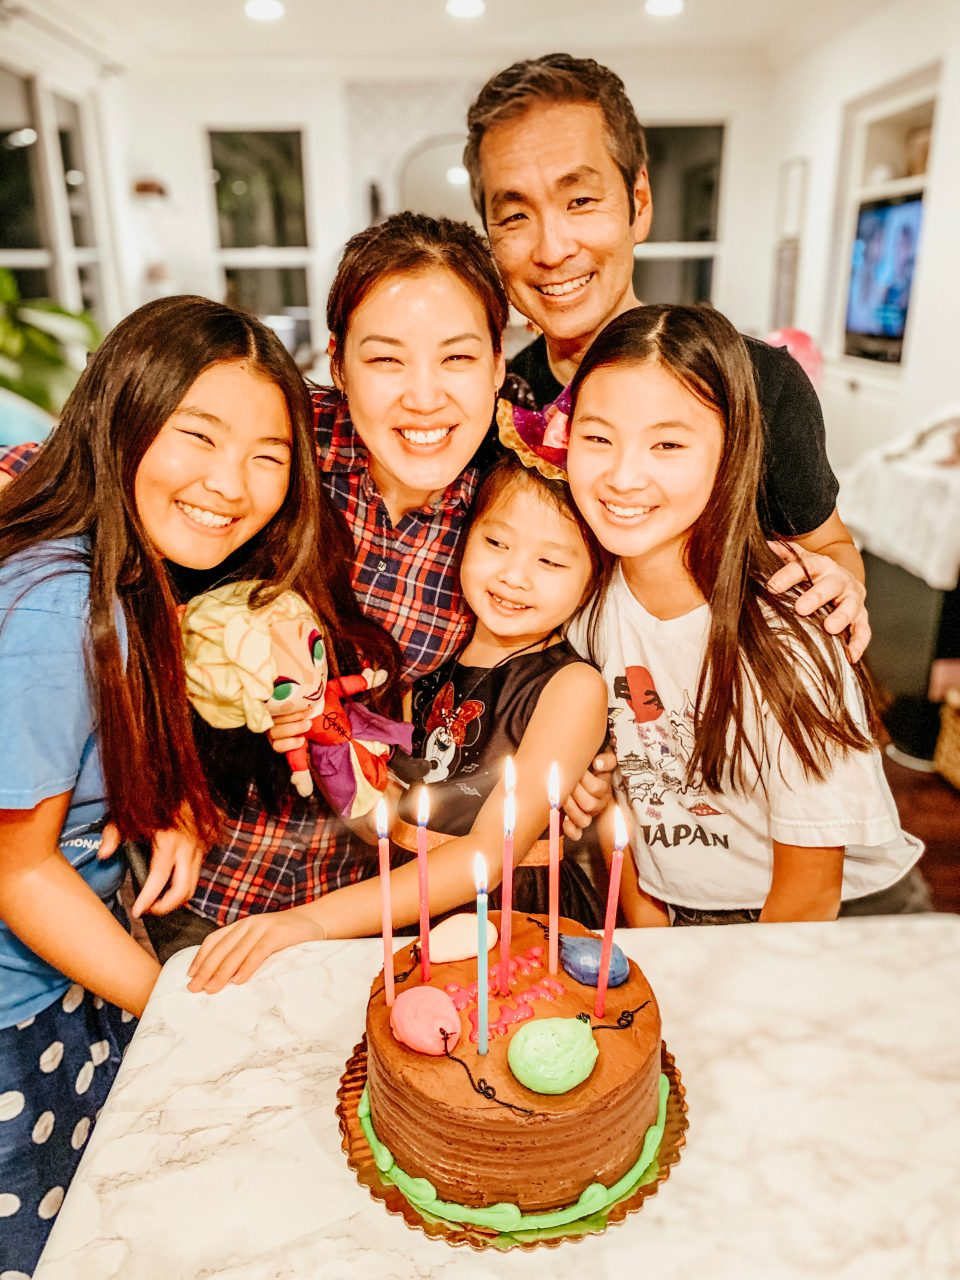 A sweet family moment, all five Yokotas gathered around a cake for Natalie's birthday